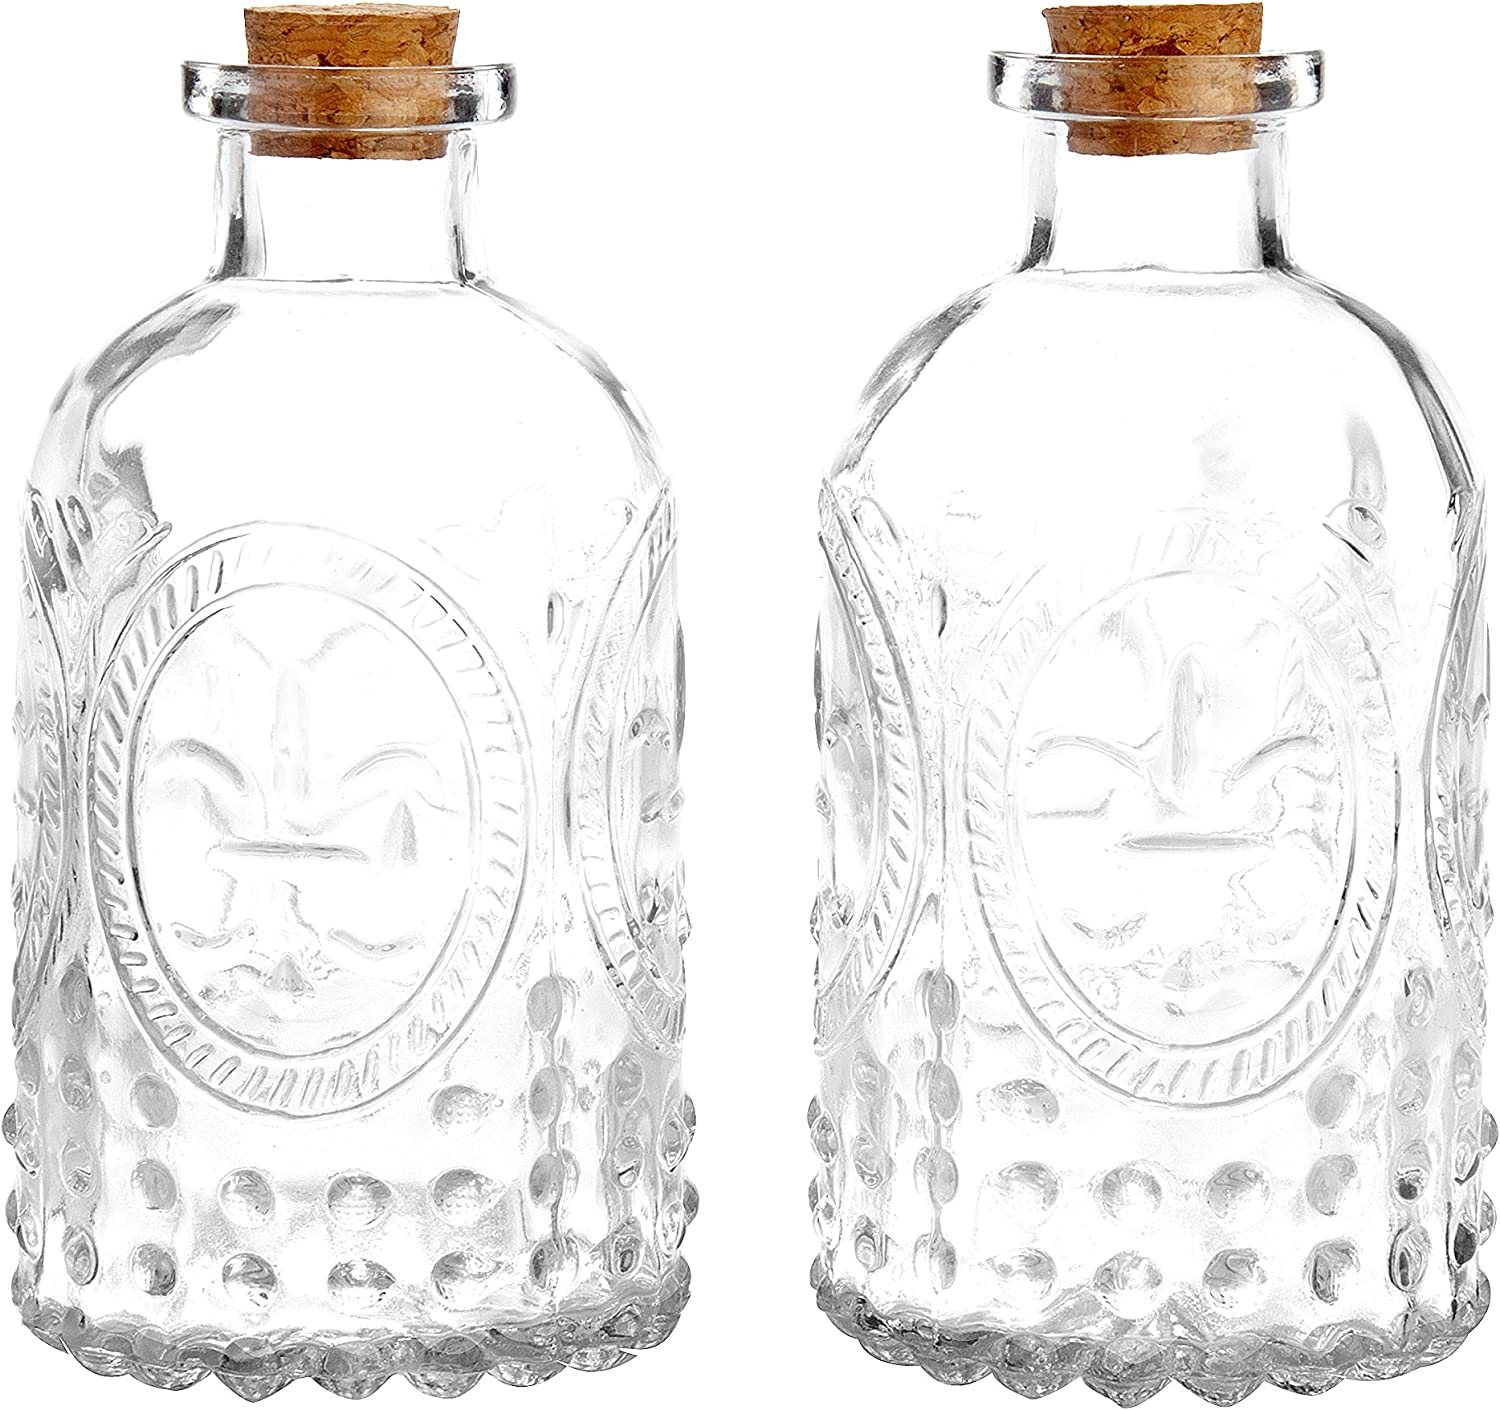 MyGift Vintage Design Embossed Clear Glass Bottles, Apothecary Flower Bud Vase with Cork Lid, Set of 2